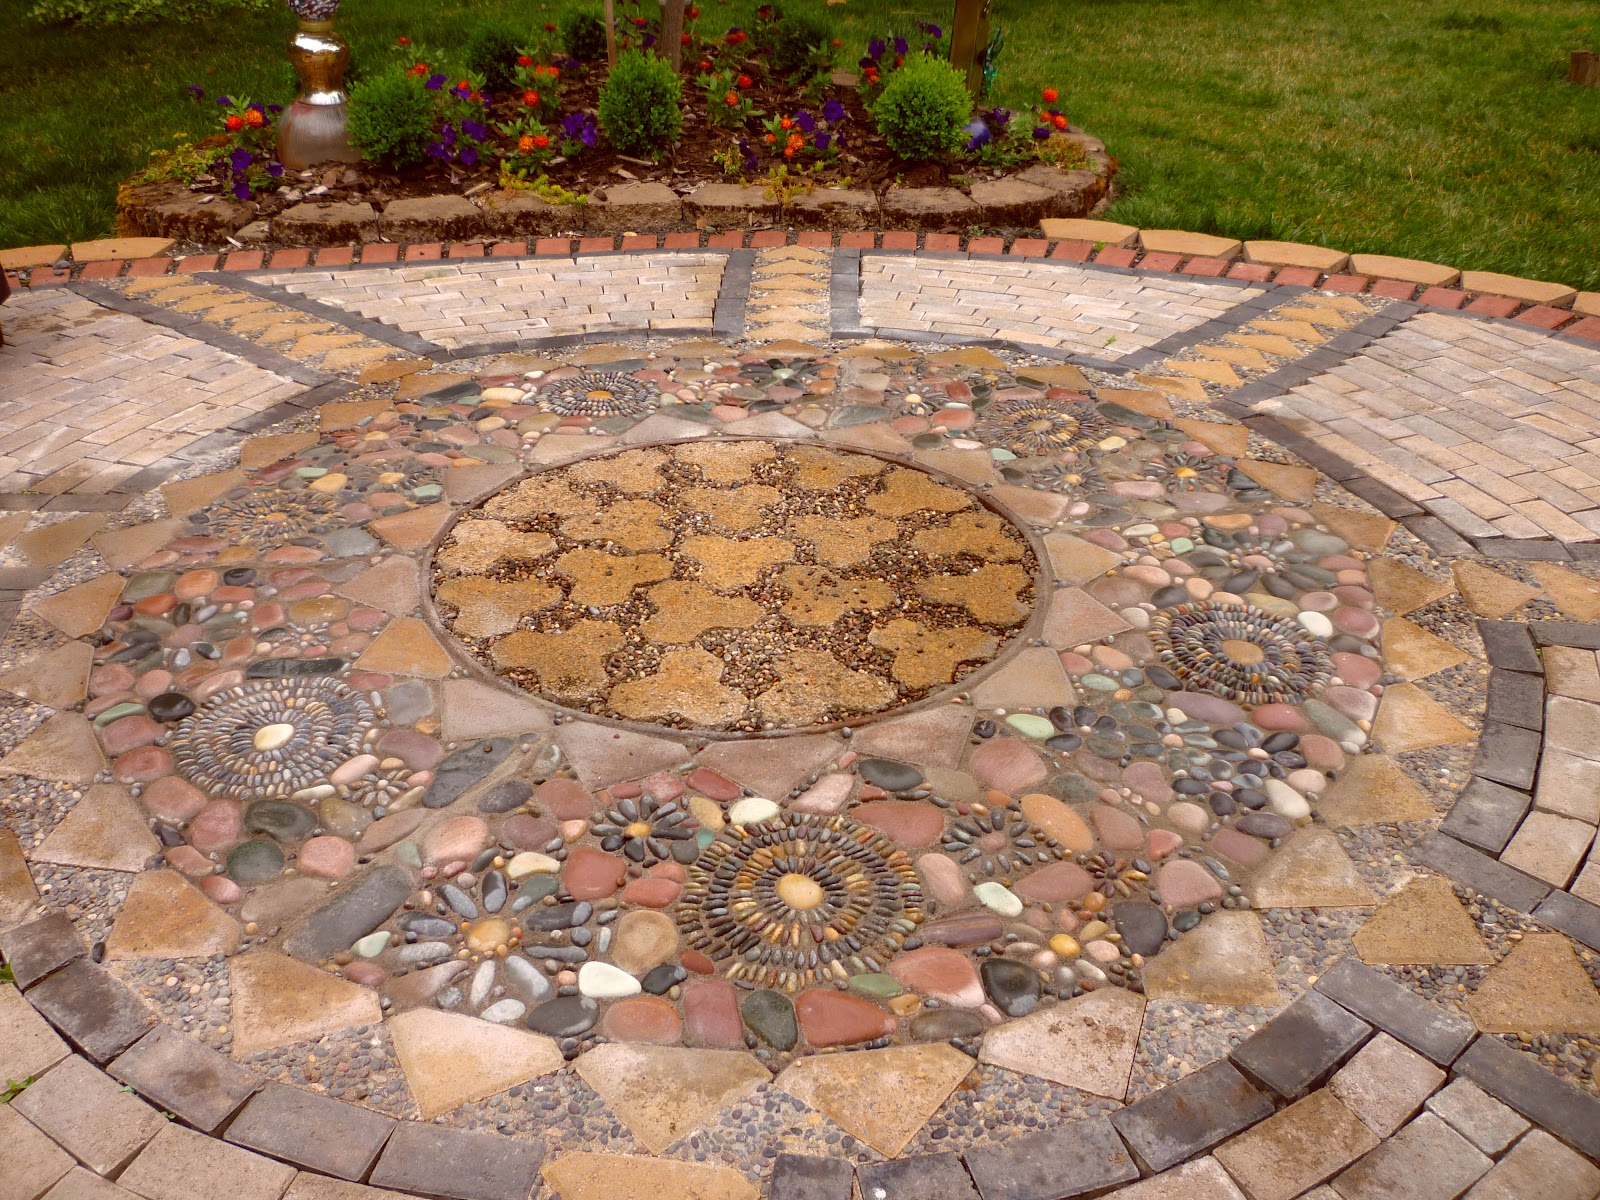 Making Paver And Pebble Mosaic Patio Diy Patio Pavers Creating A Paver And  Pebble Mosaic Patio